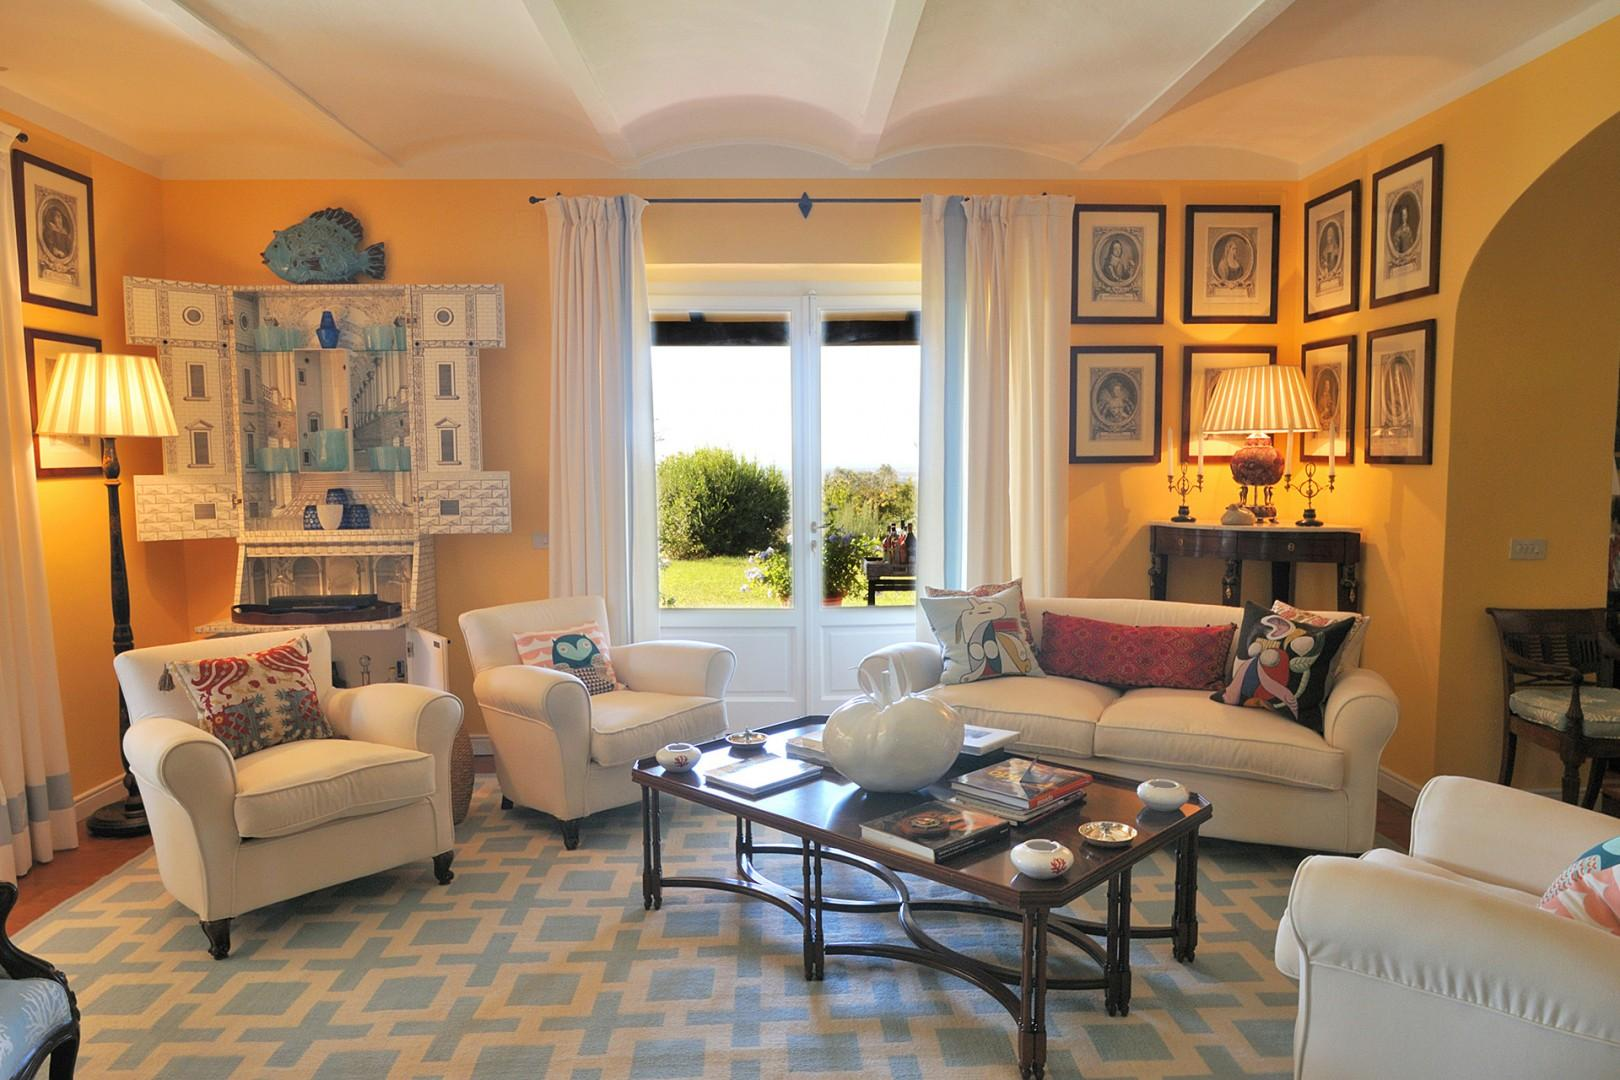 Second living room with large French doors leading to the loggia.